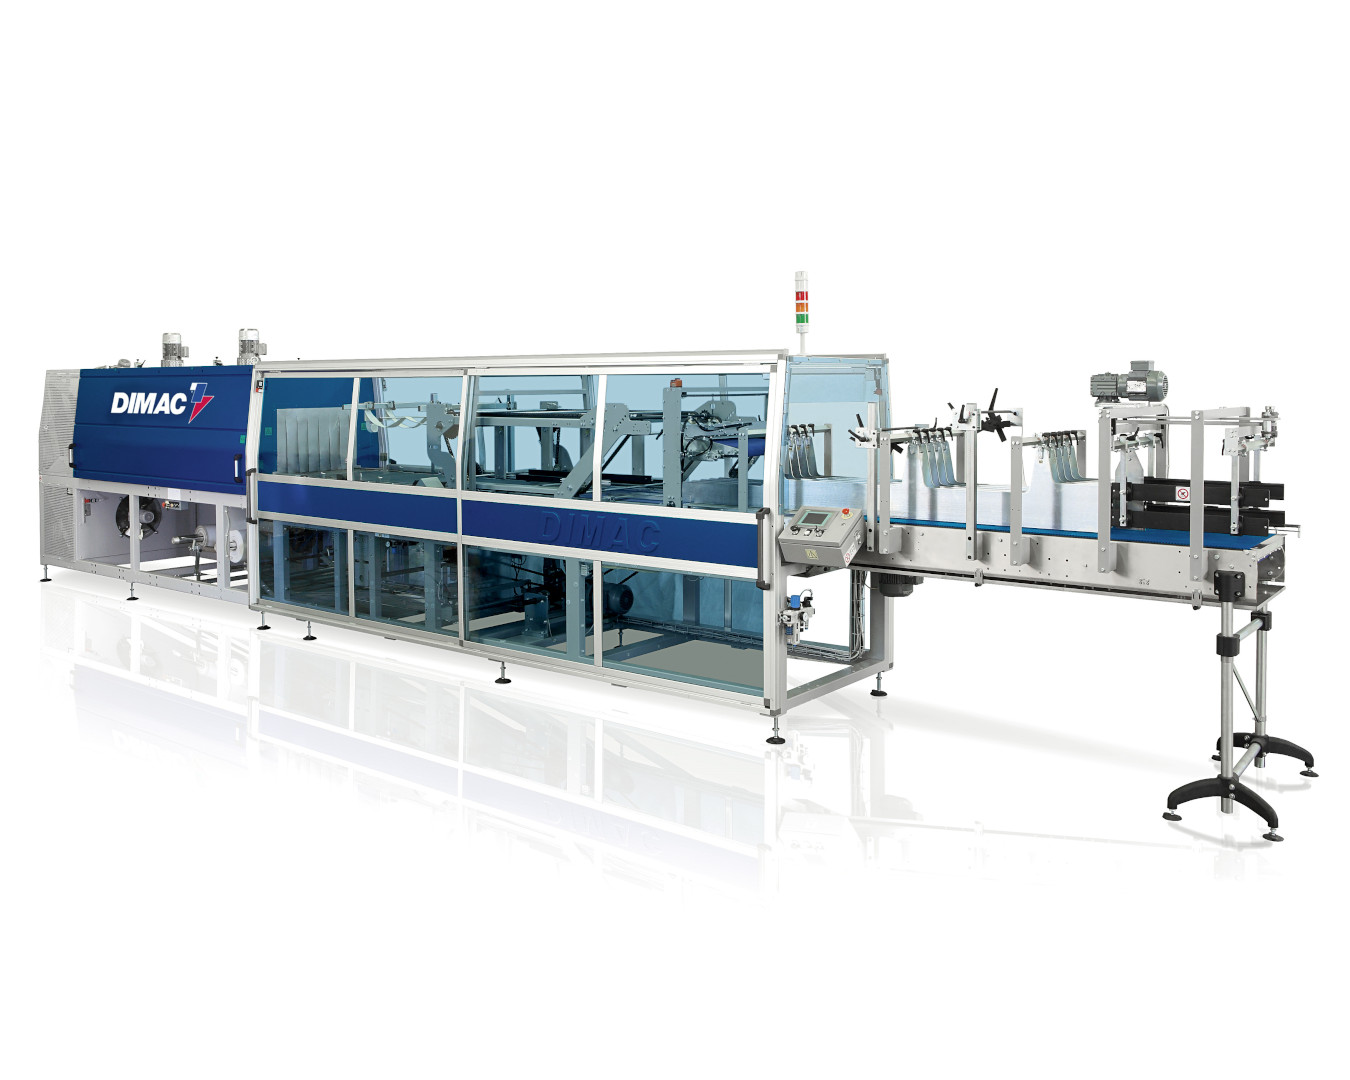 Product picture of Dimac Star: Shrink Wrapping Machines